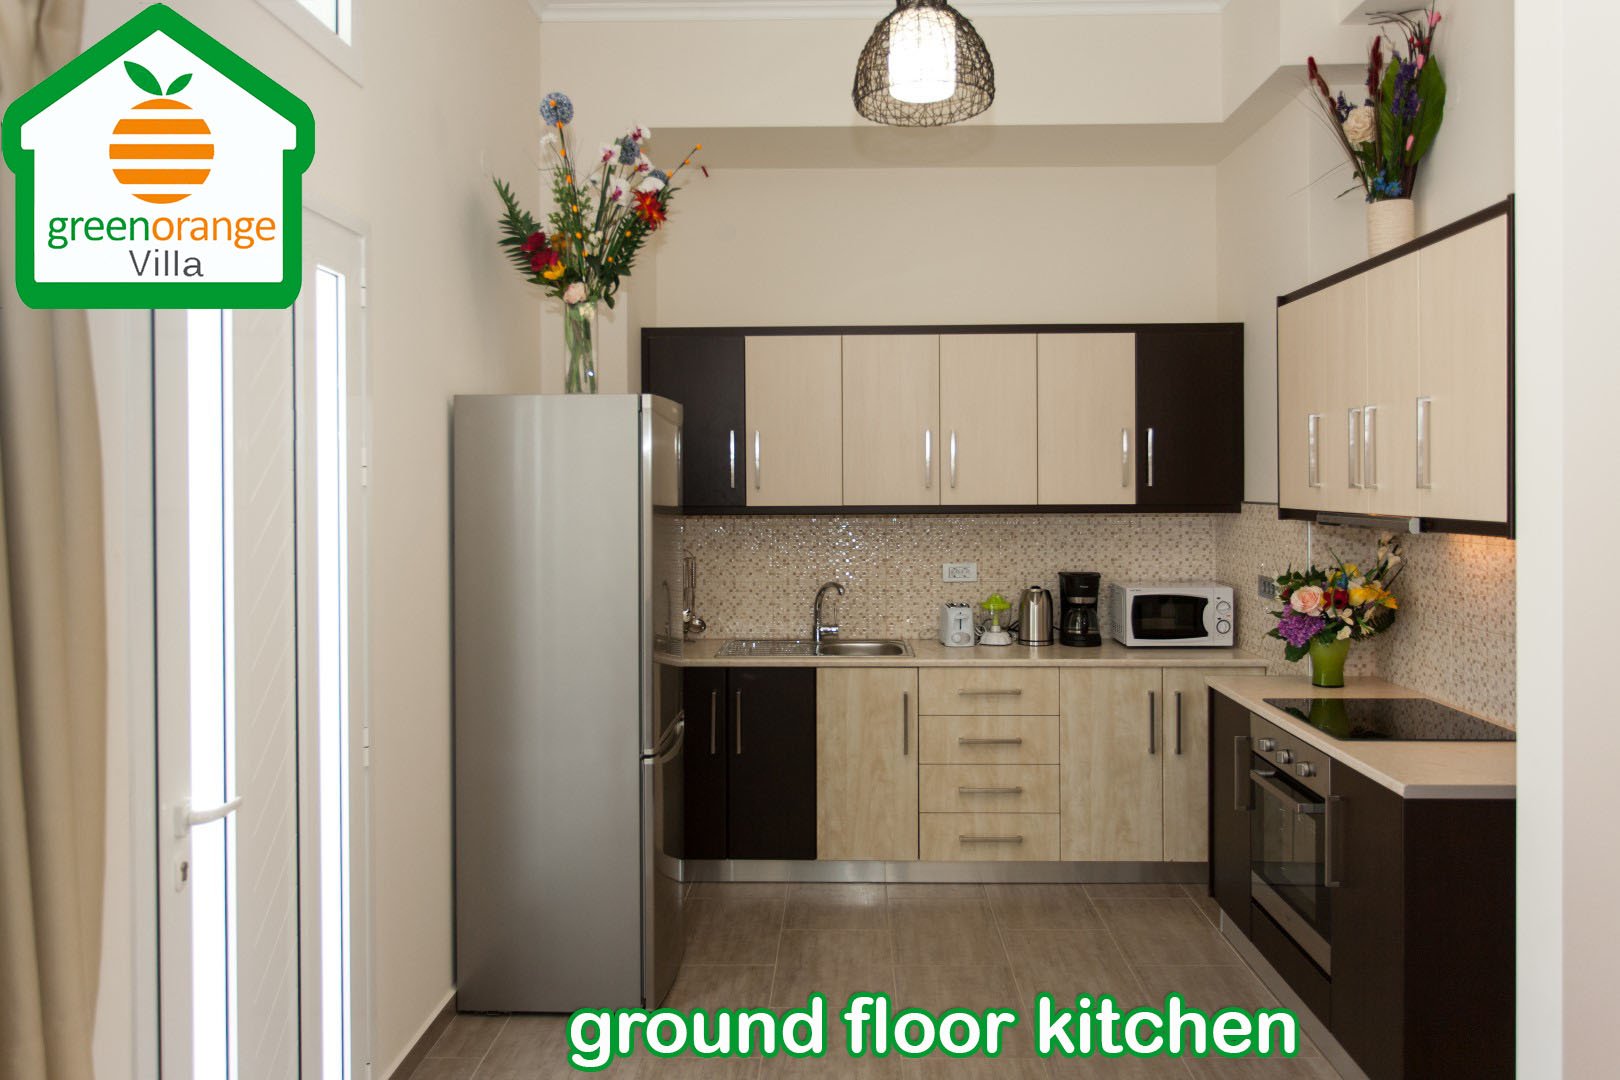 ground-floor-kitchen-green-orange-villa-chania-crete